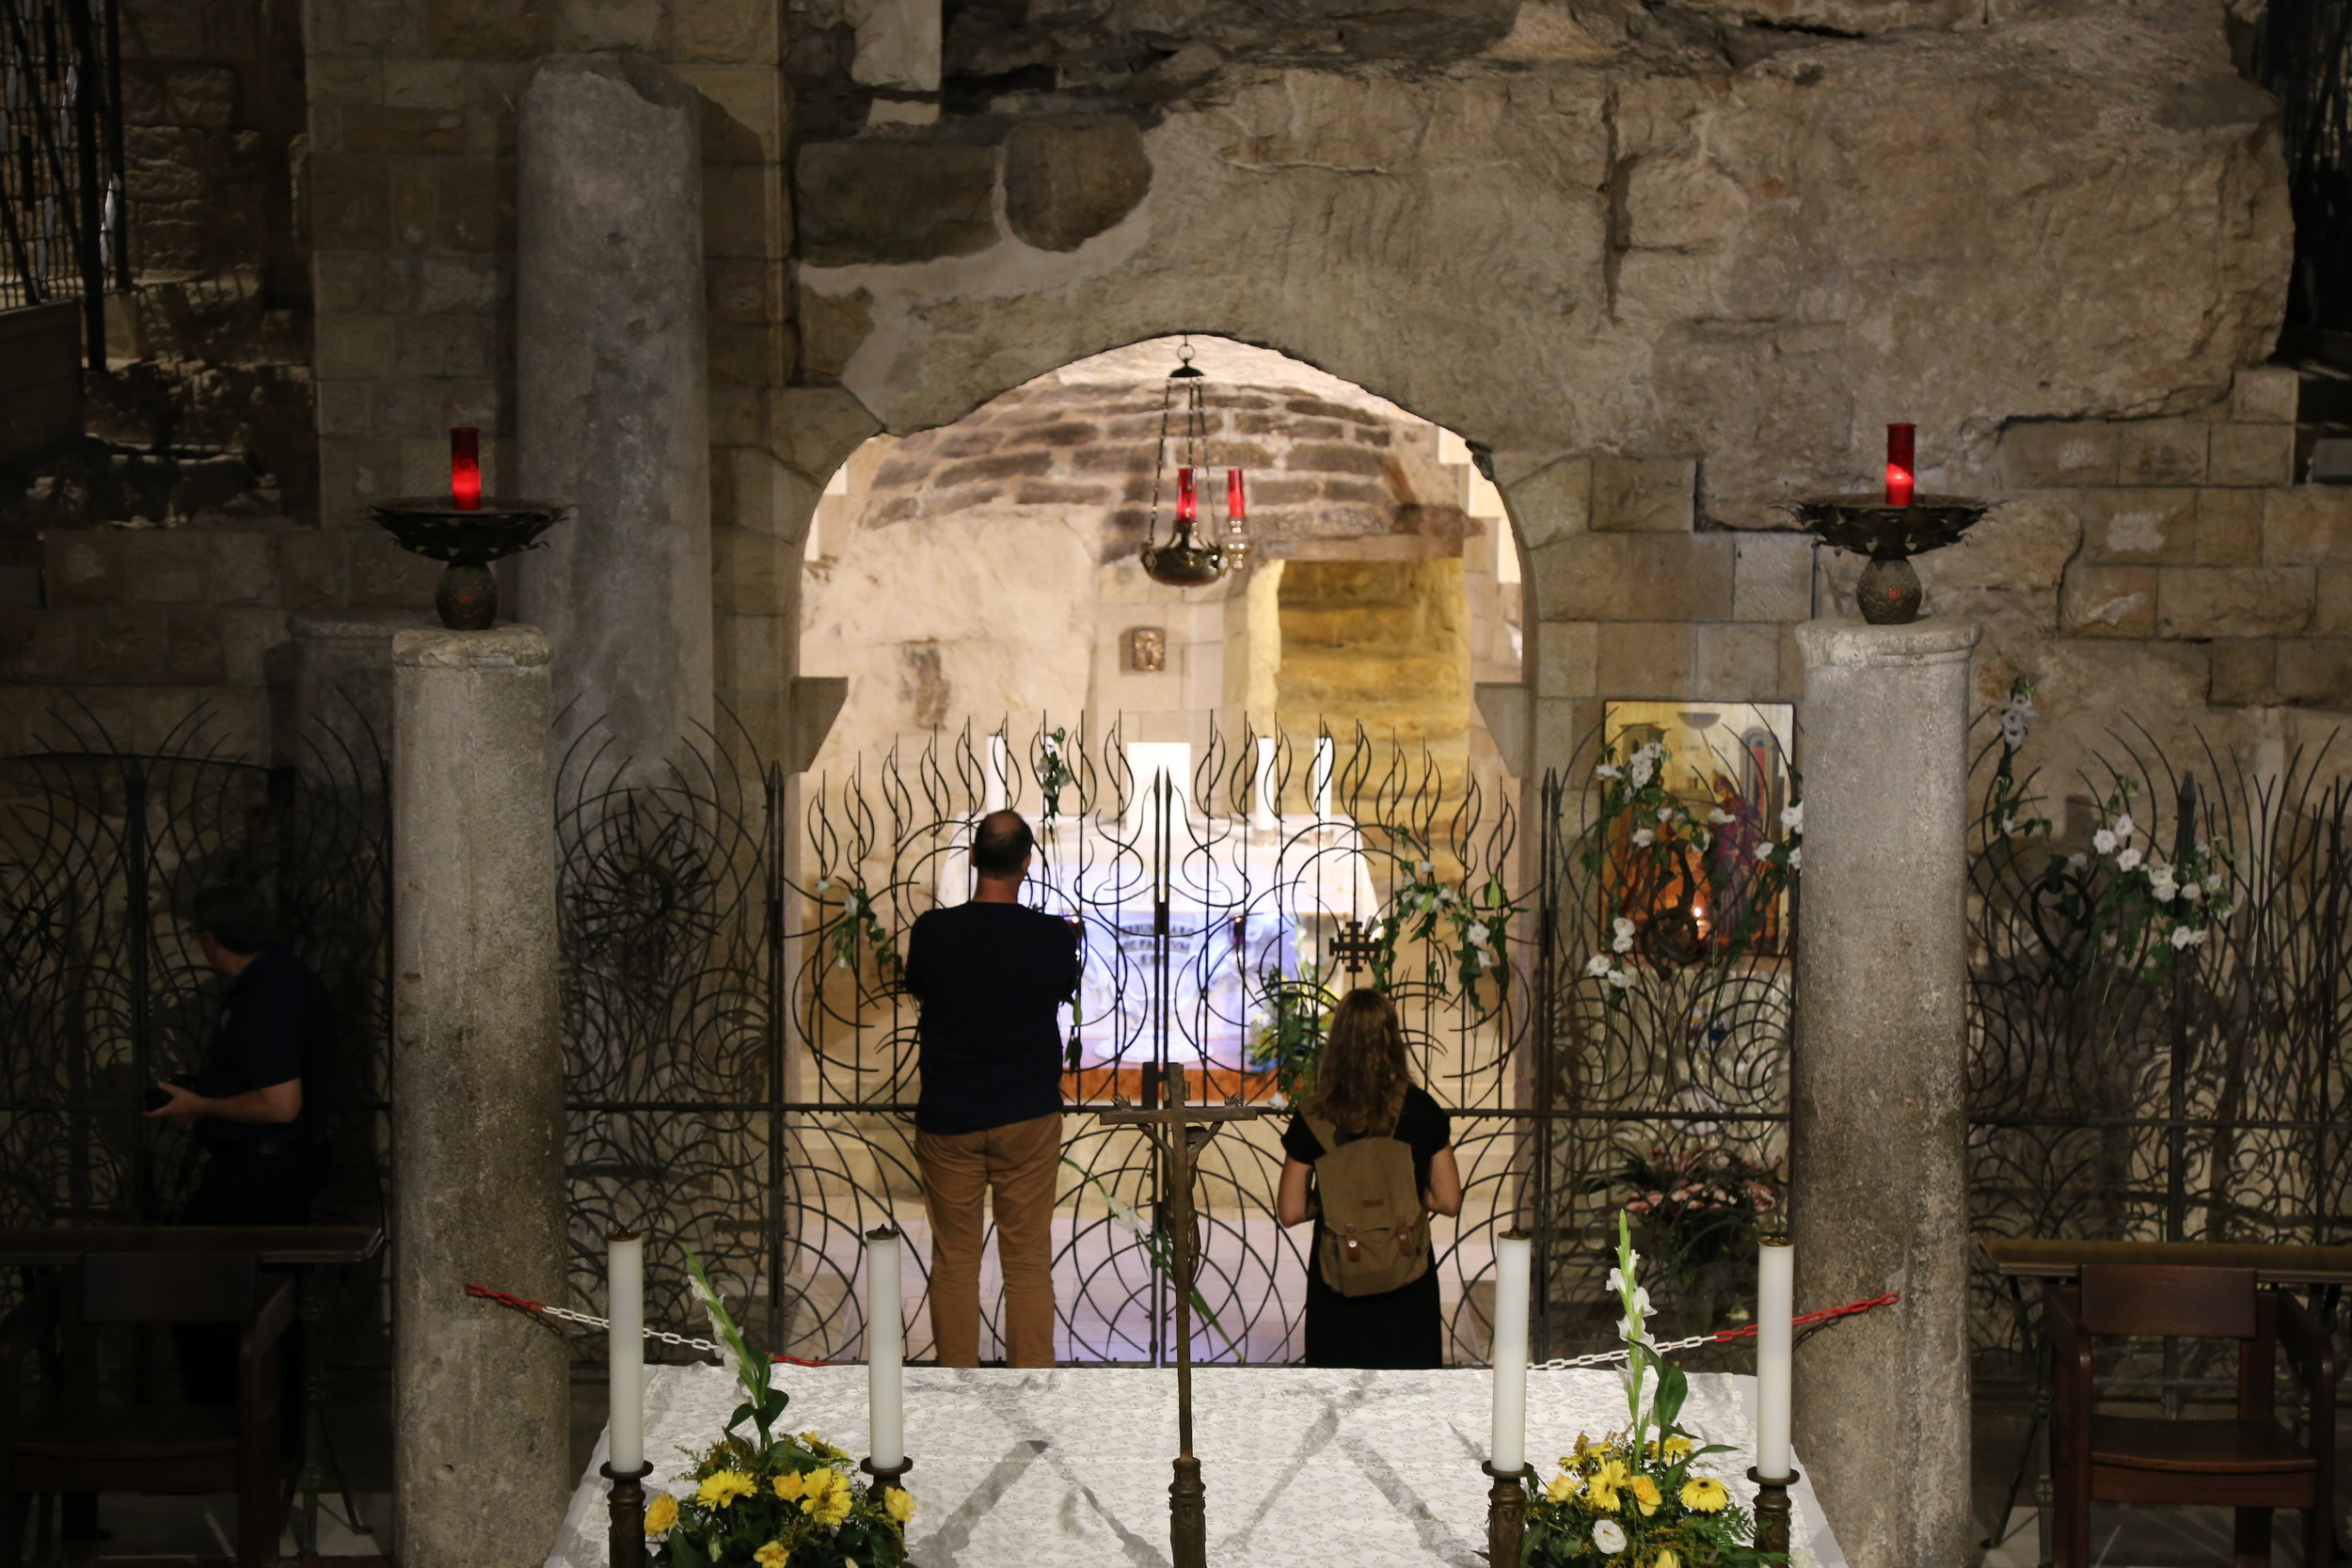 Annunciation Grotto in the Basilica - marking the spot where we believe Gabriel visited Mary.